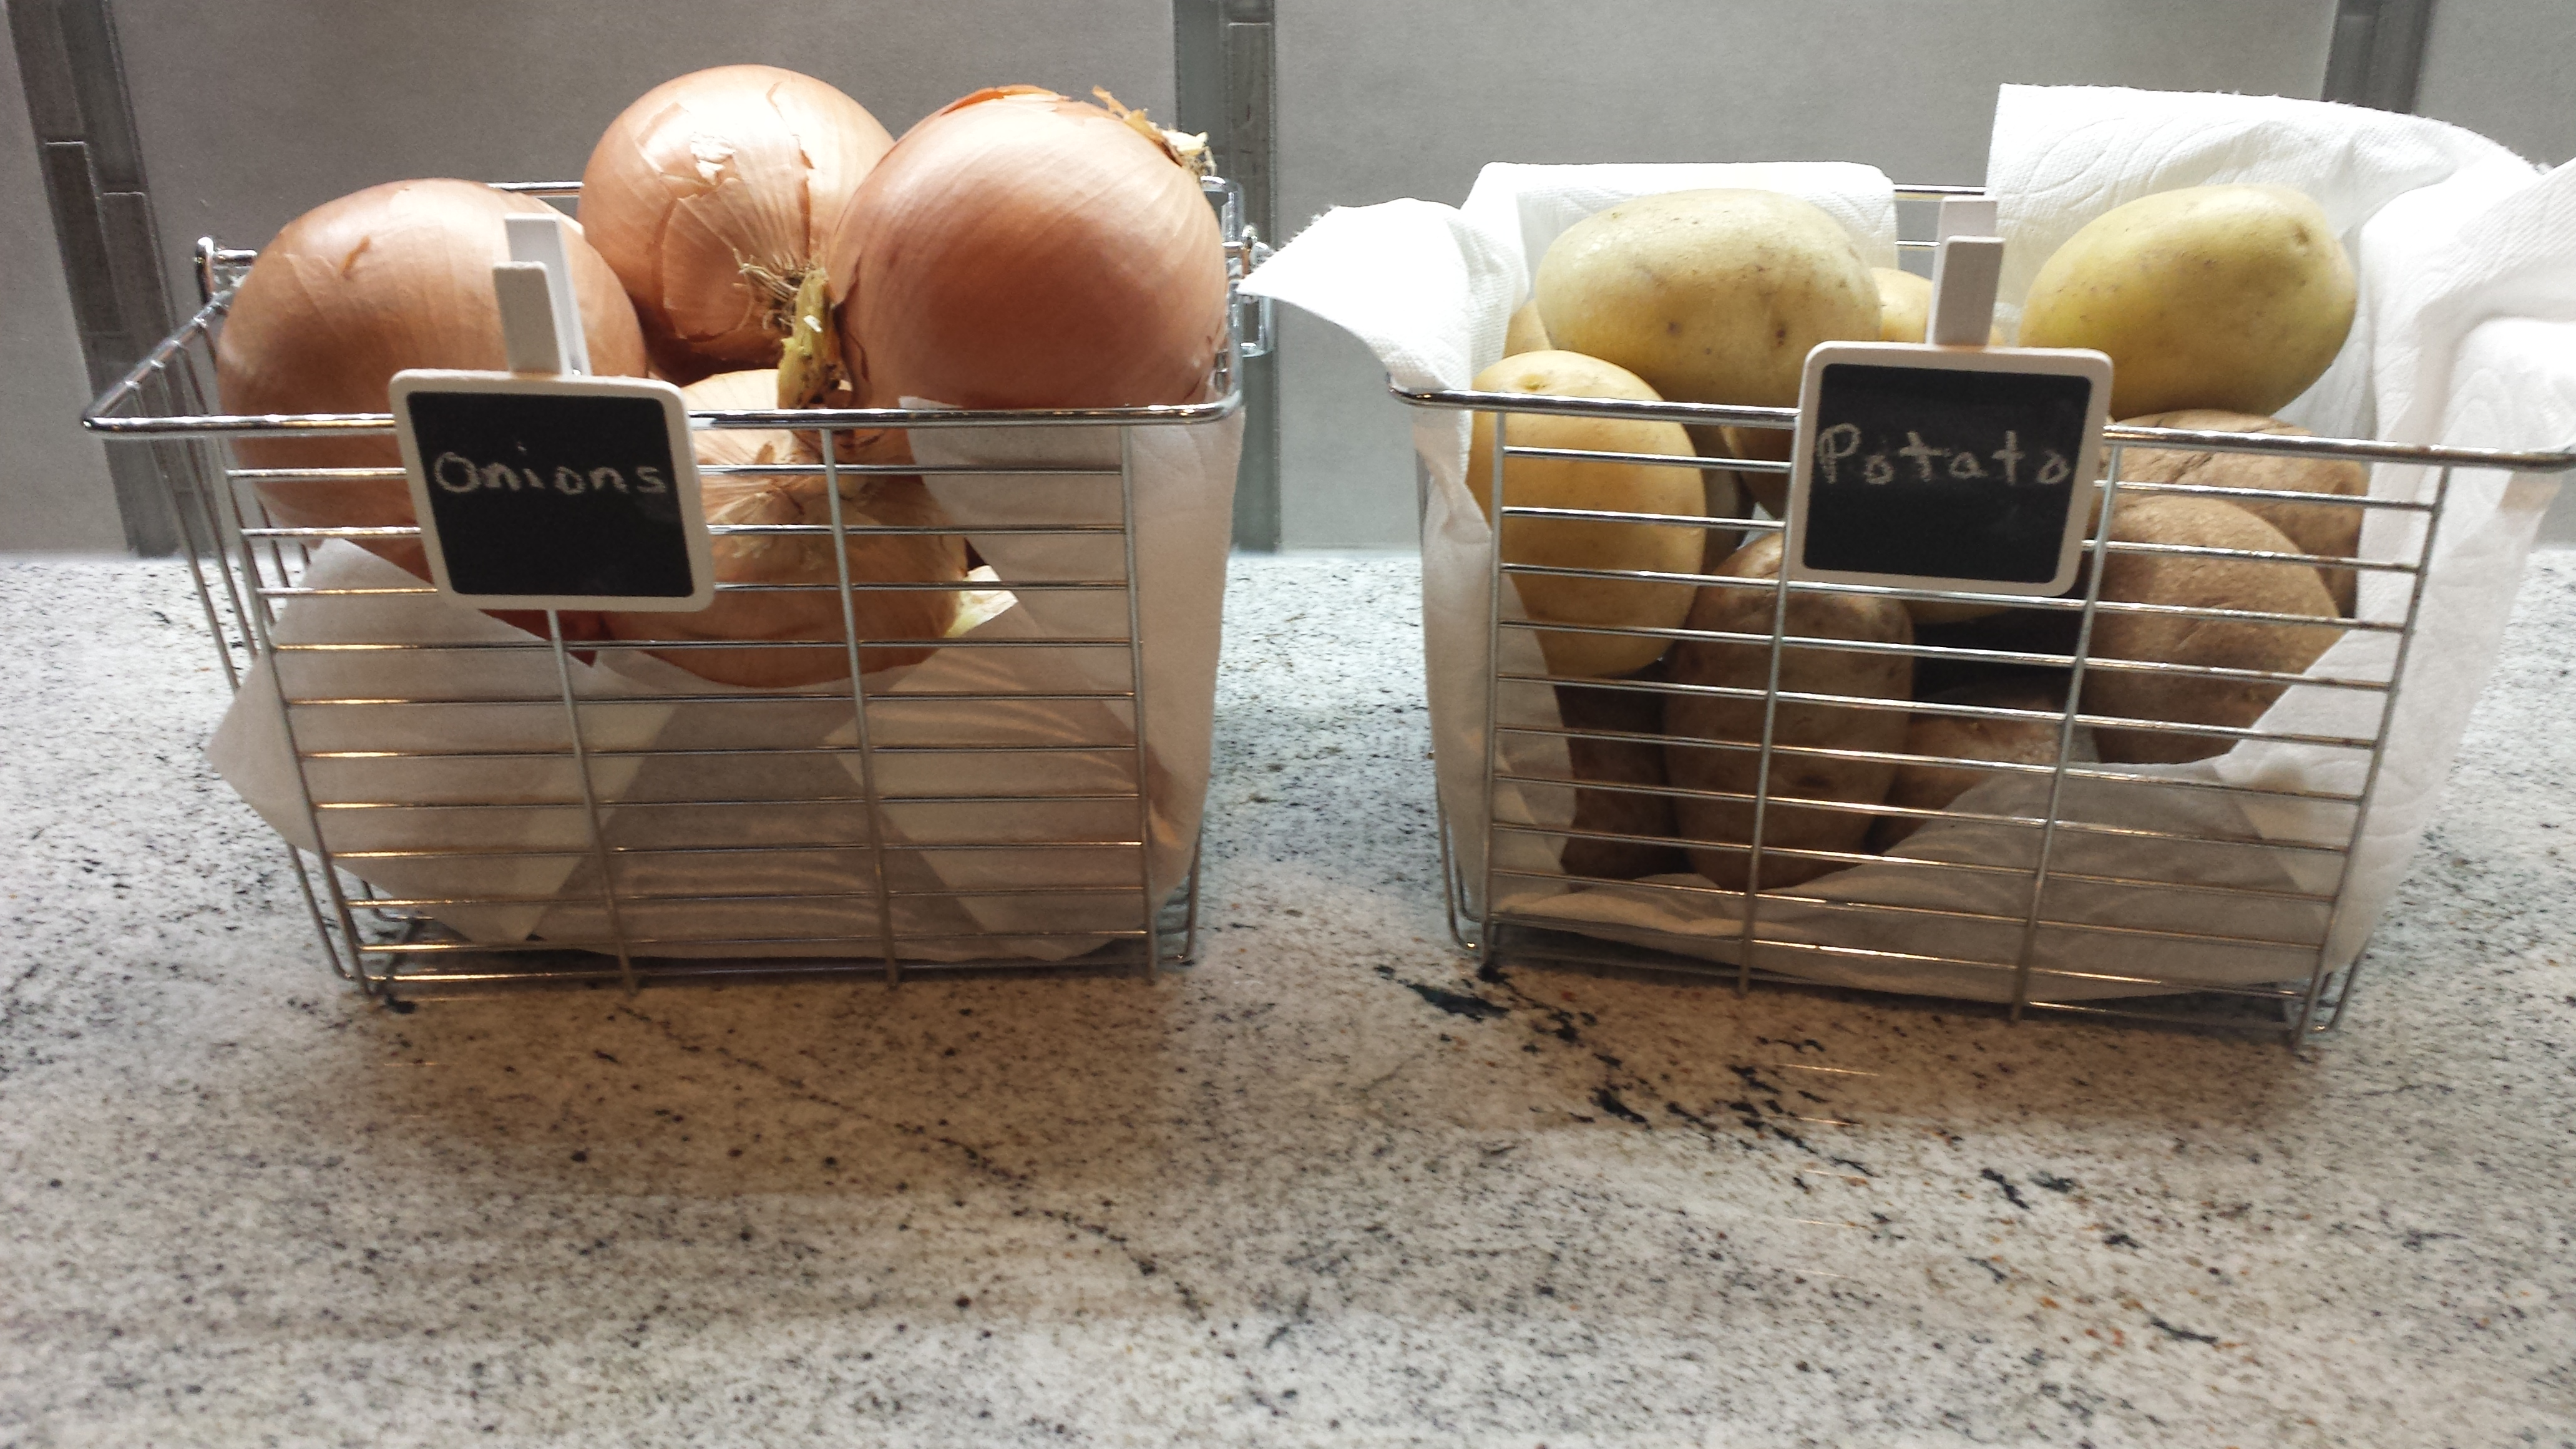 Storing Onions and Potatoes